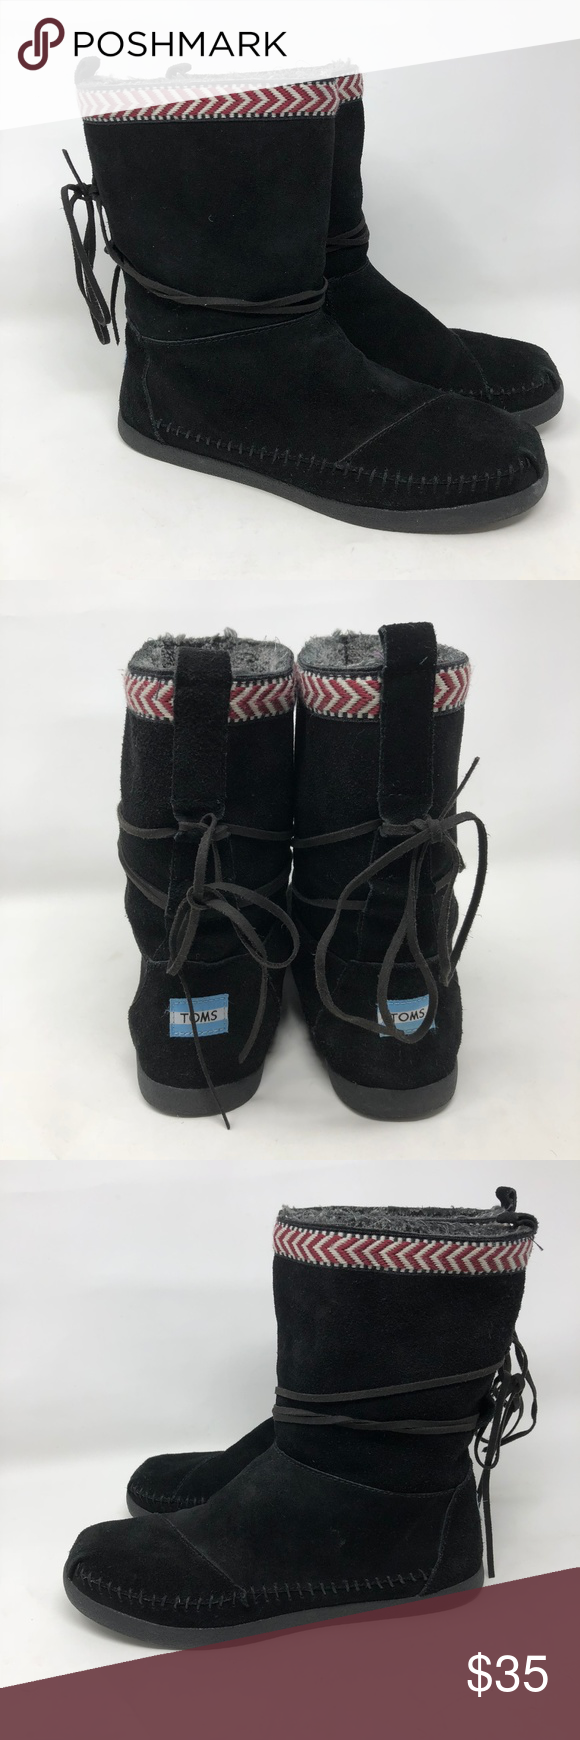 8e45076f274f0 TOMS Black Suede Winter Boots 9 -TOMS black suede pull on winter boots - Embroidered around top -Size 9 -Ties wrap around -Sherpa lined Toms Shoes  Winter ...